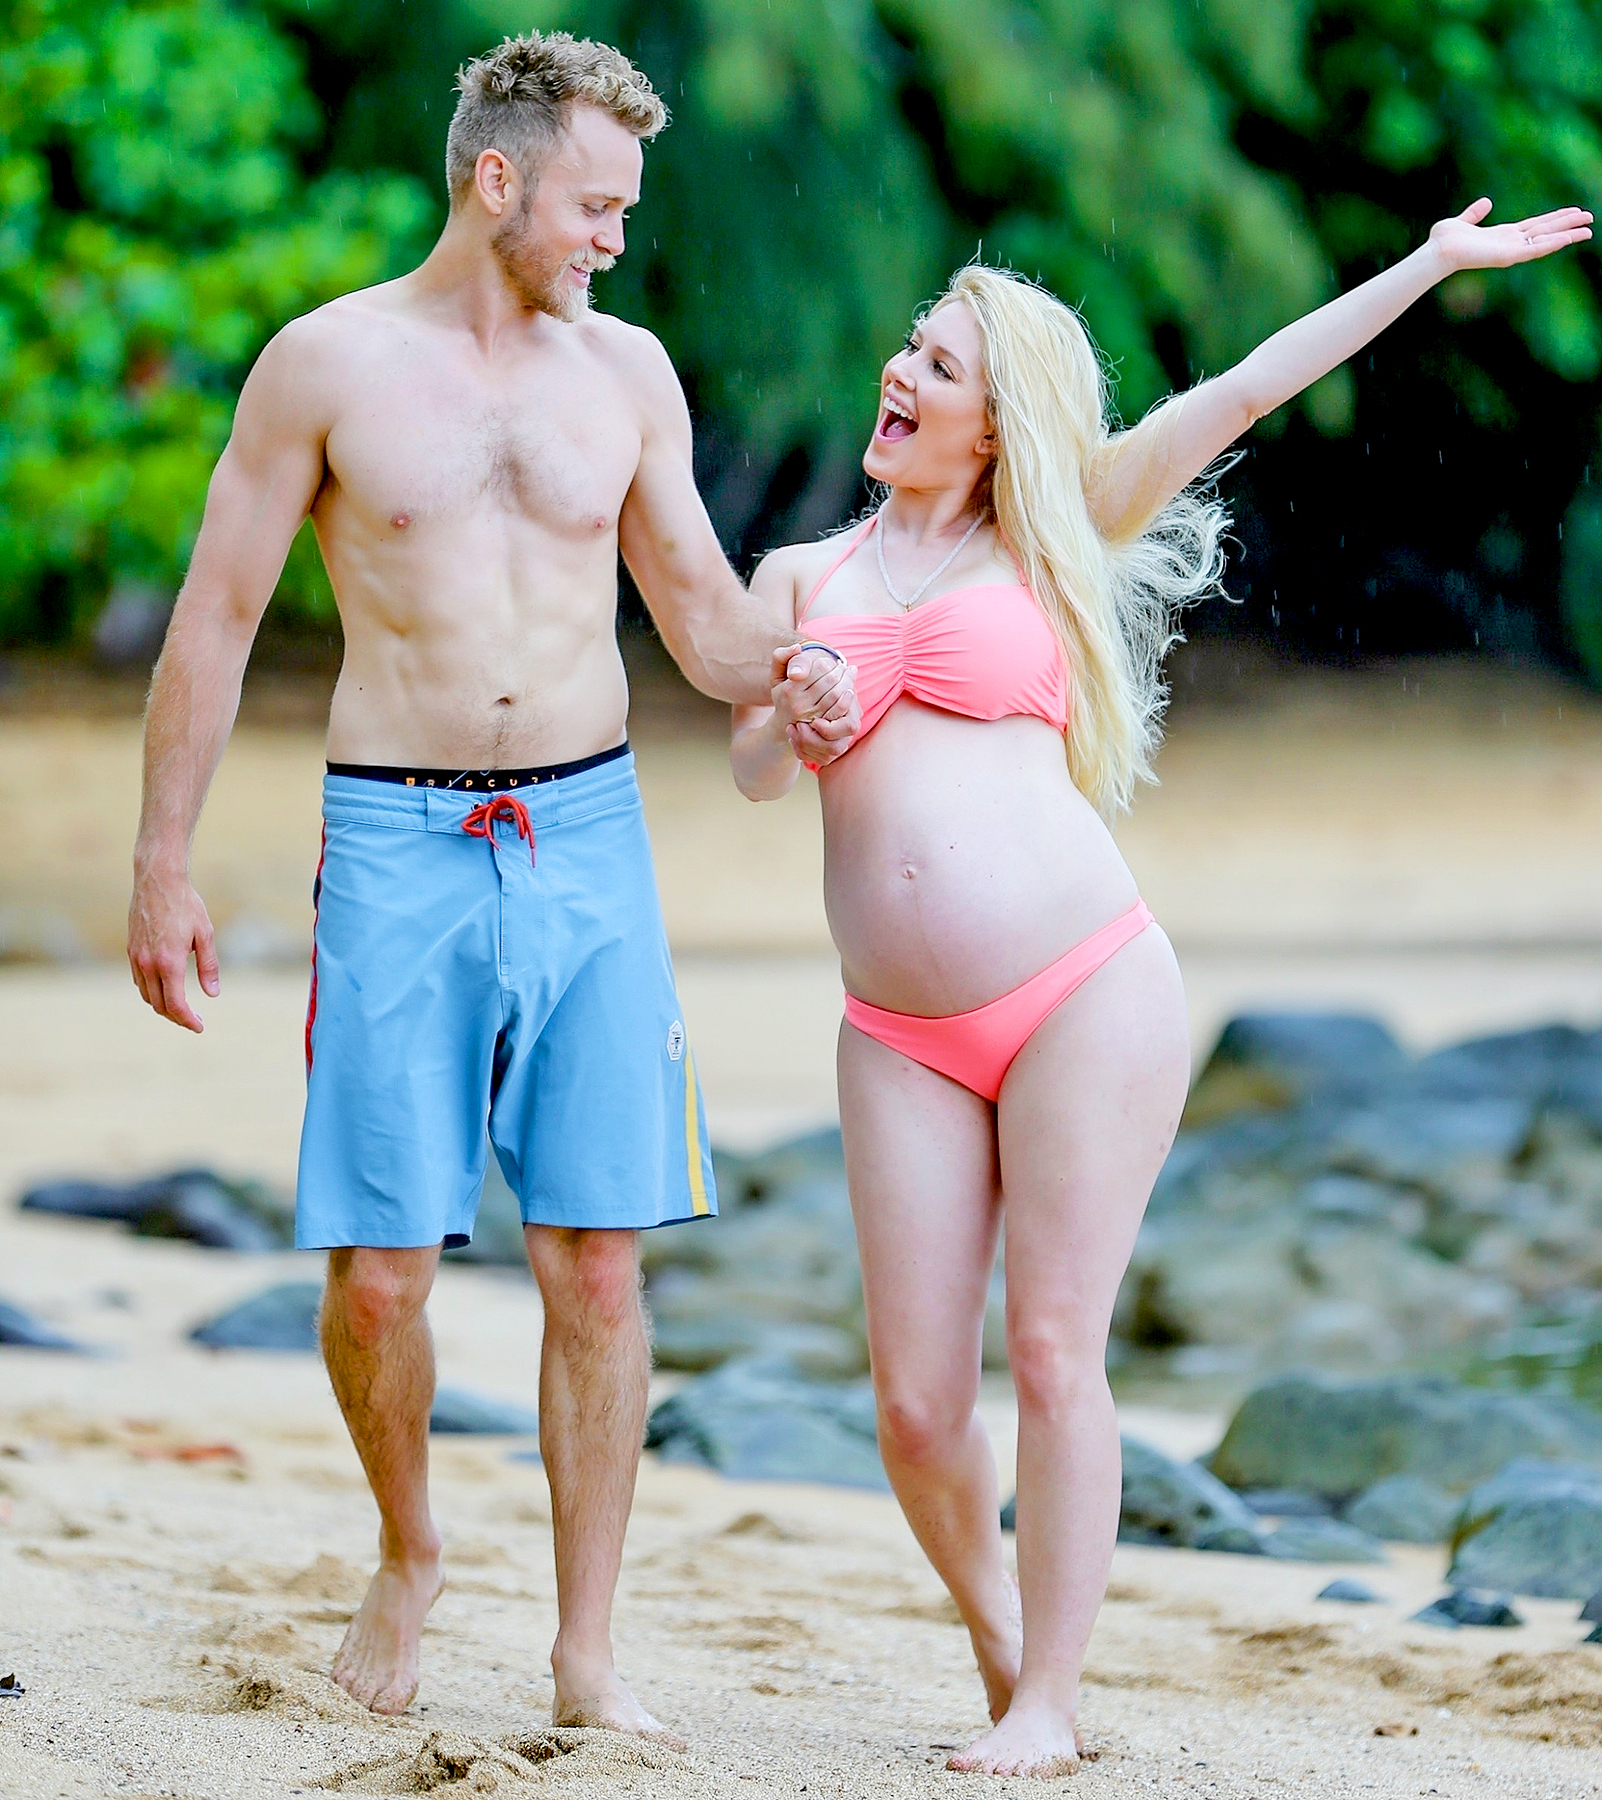 Heidi Montag and Spencer Pratt enjoy a day in Hawaii together.